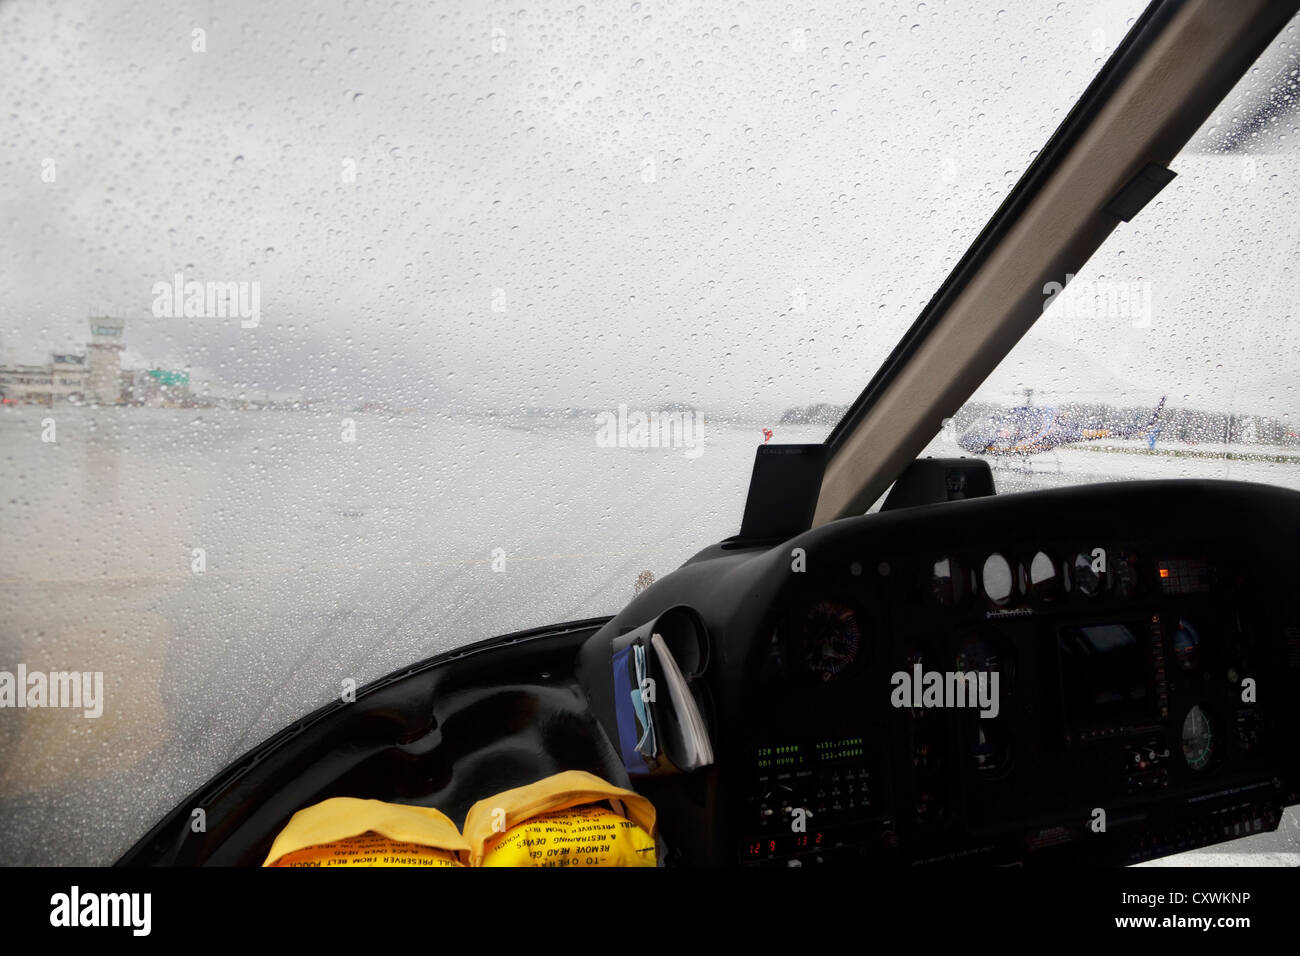 Helicopter cockpit preparing for rainy takeoff - Stock Image